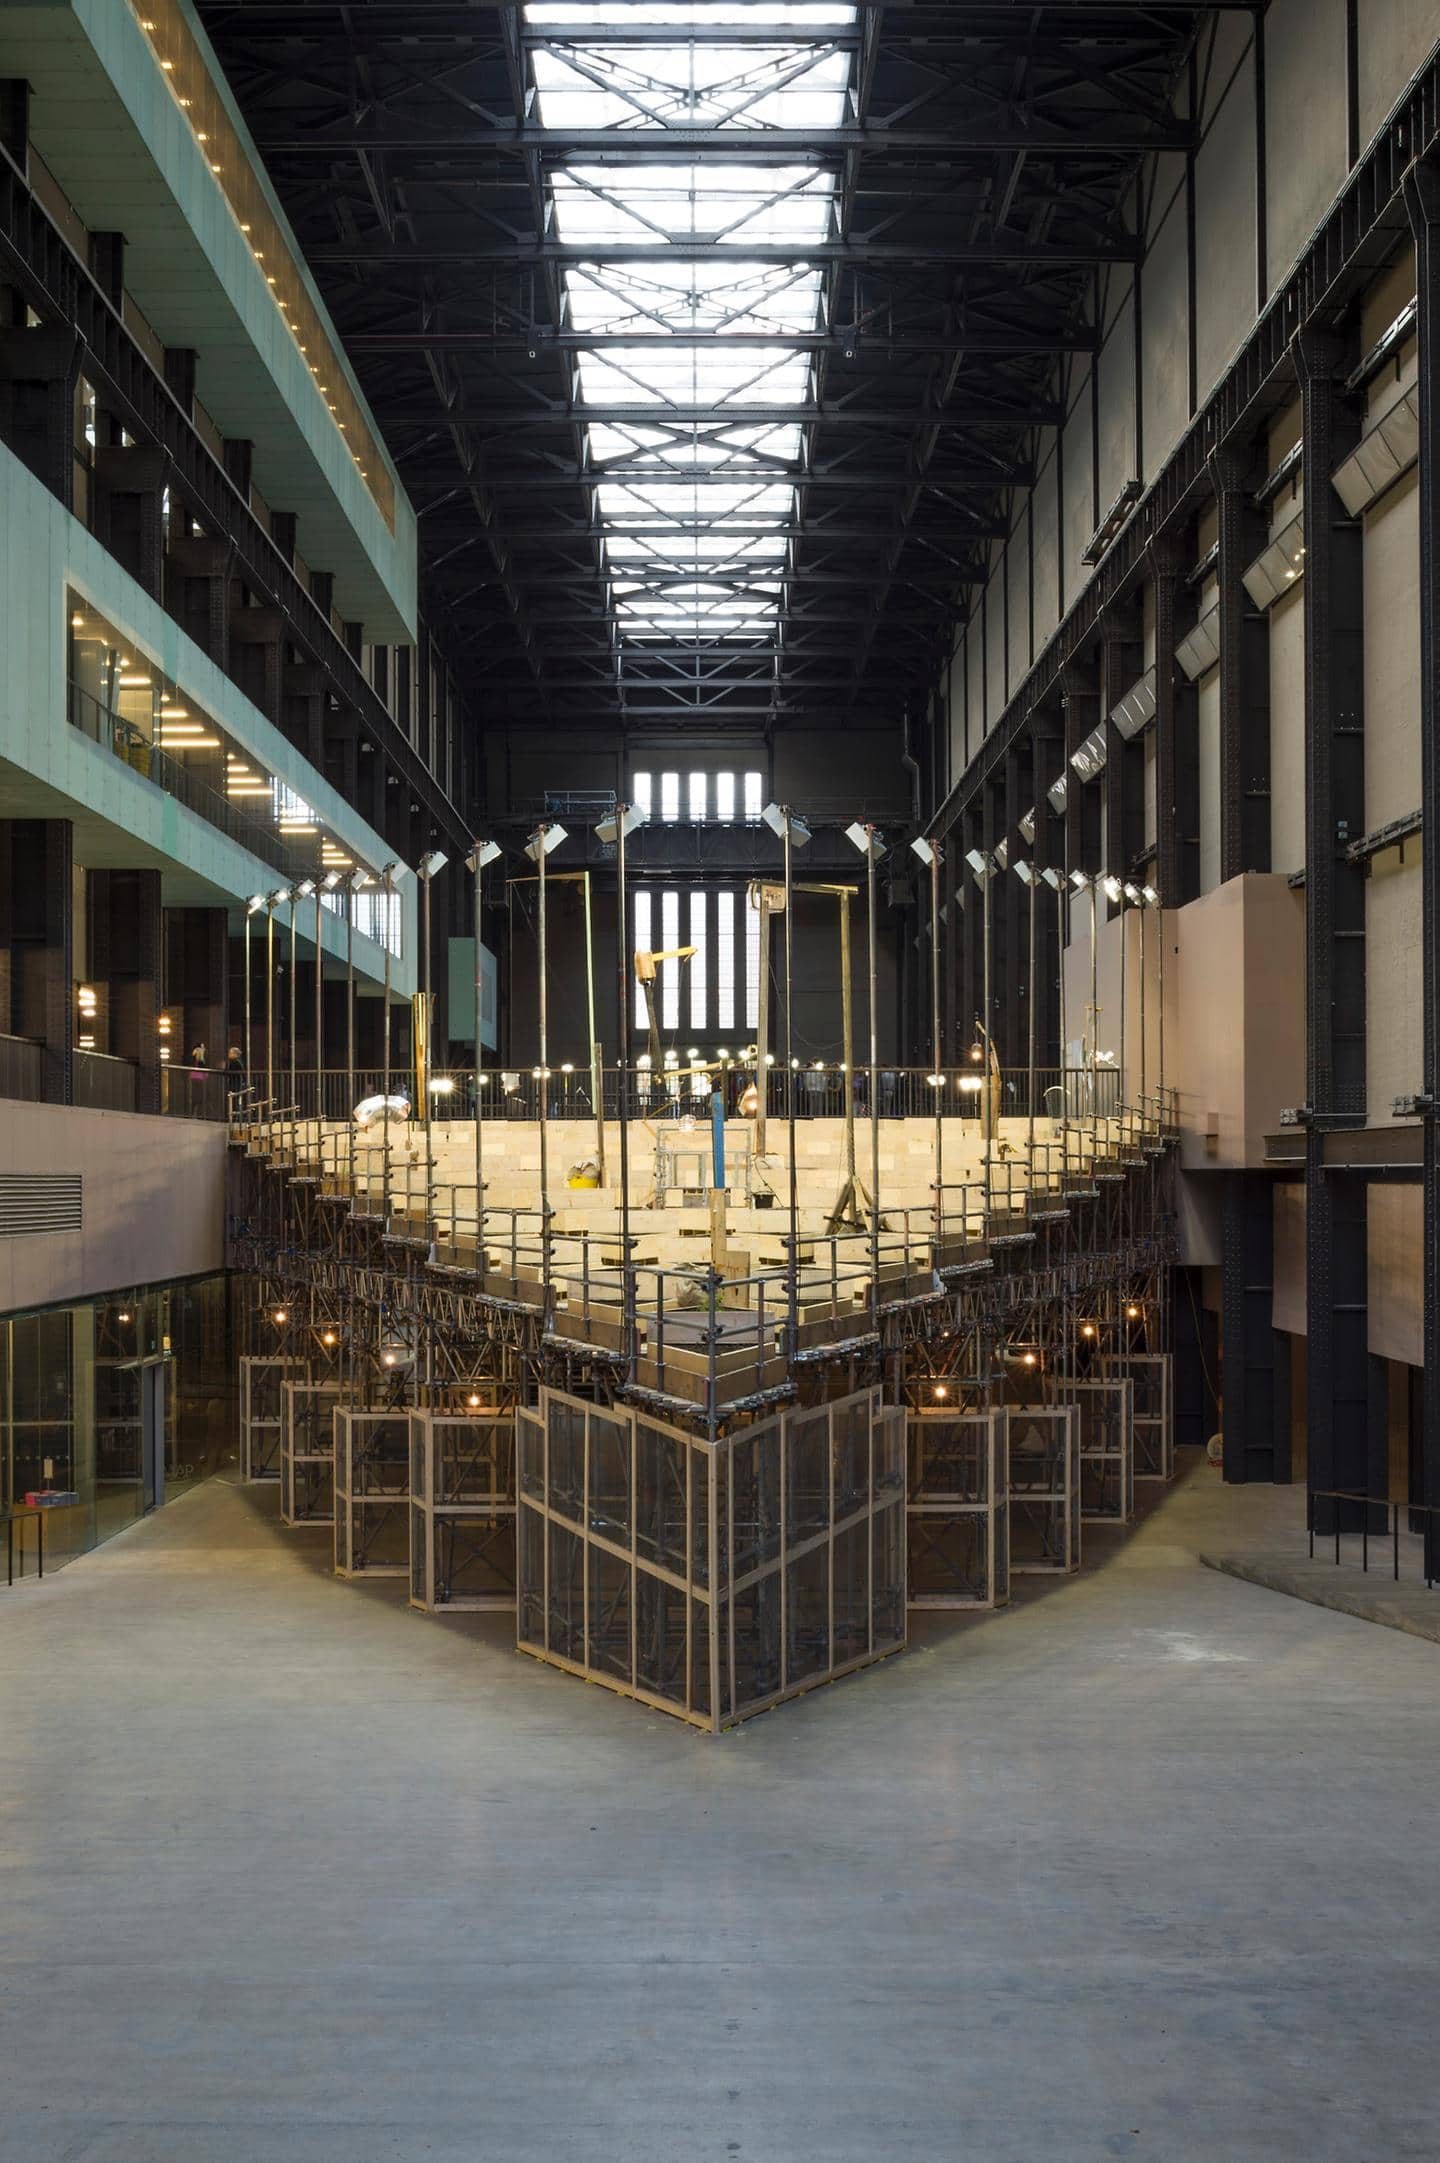 Hyundai Motor Announces the Opening of the Inaugural Hyundai Commission at Tate Modern (5)